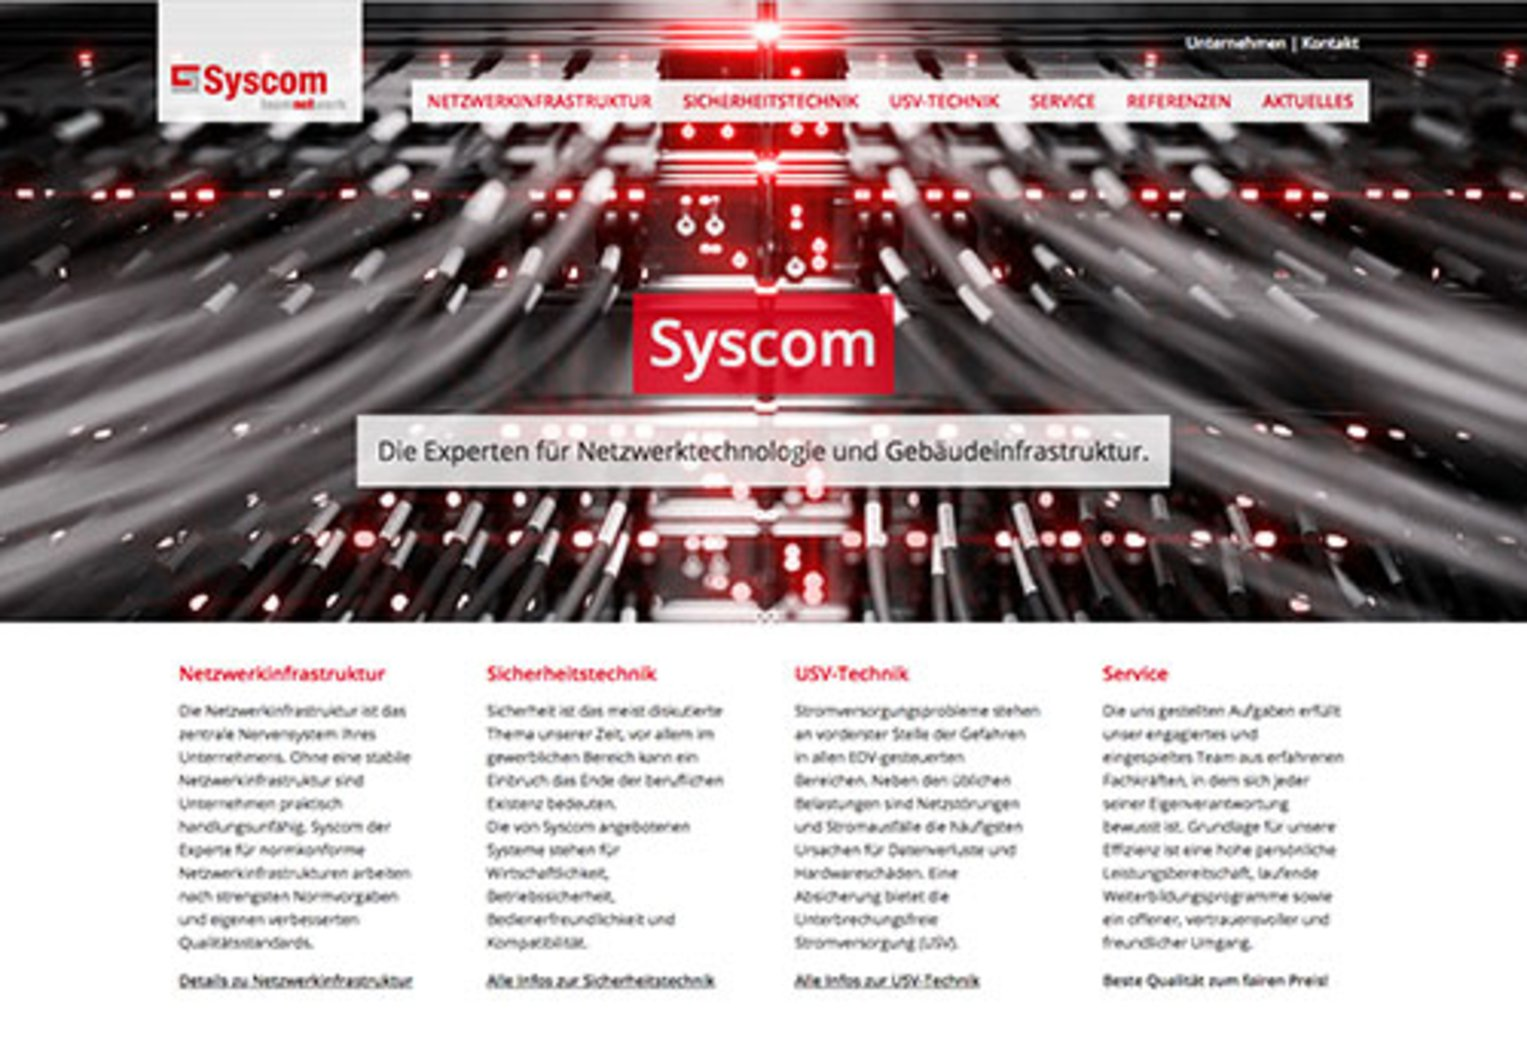 Syscom - Teamnetwork